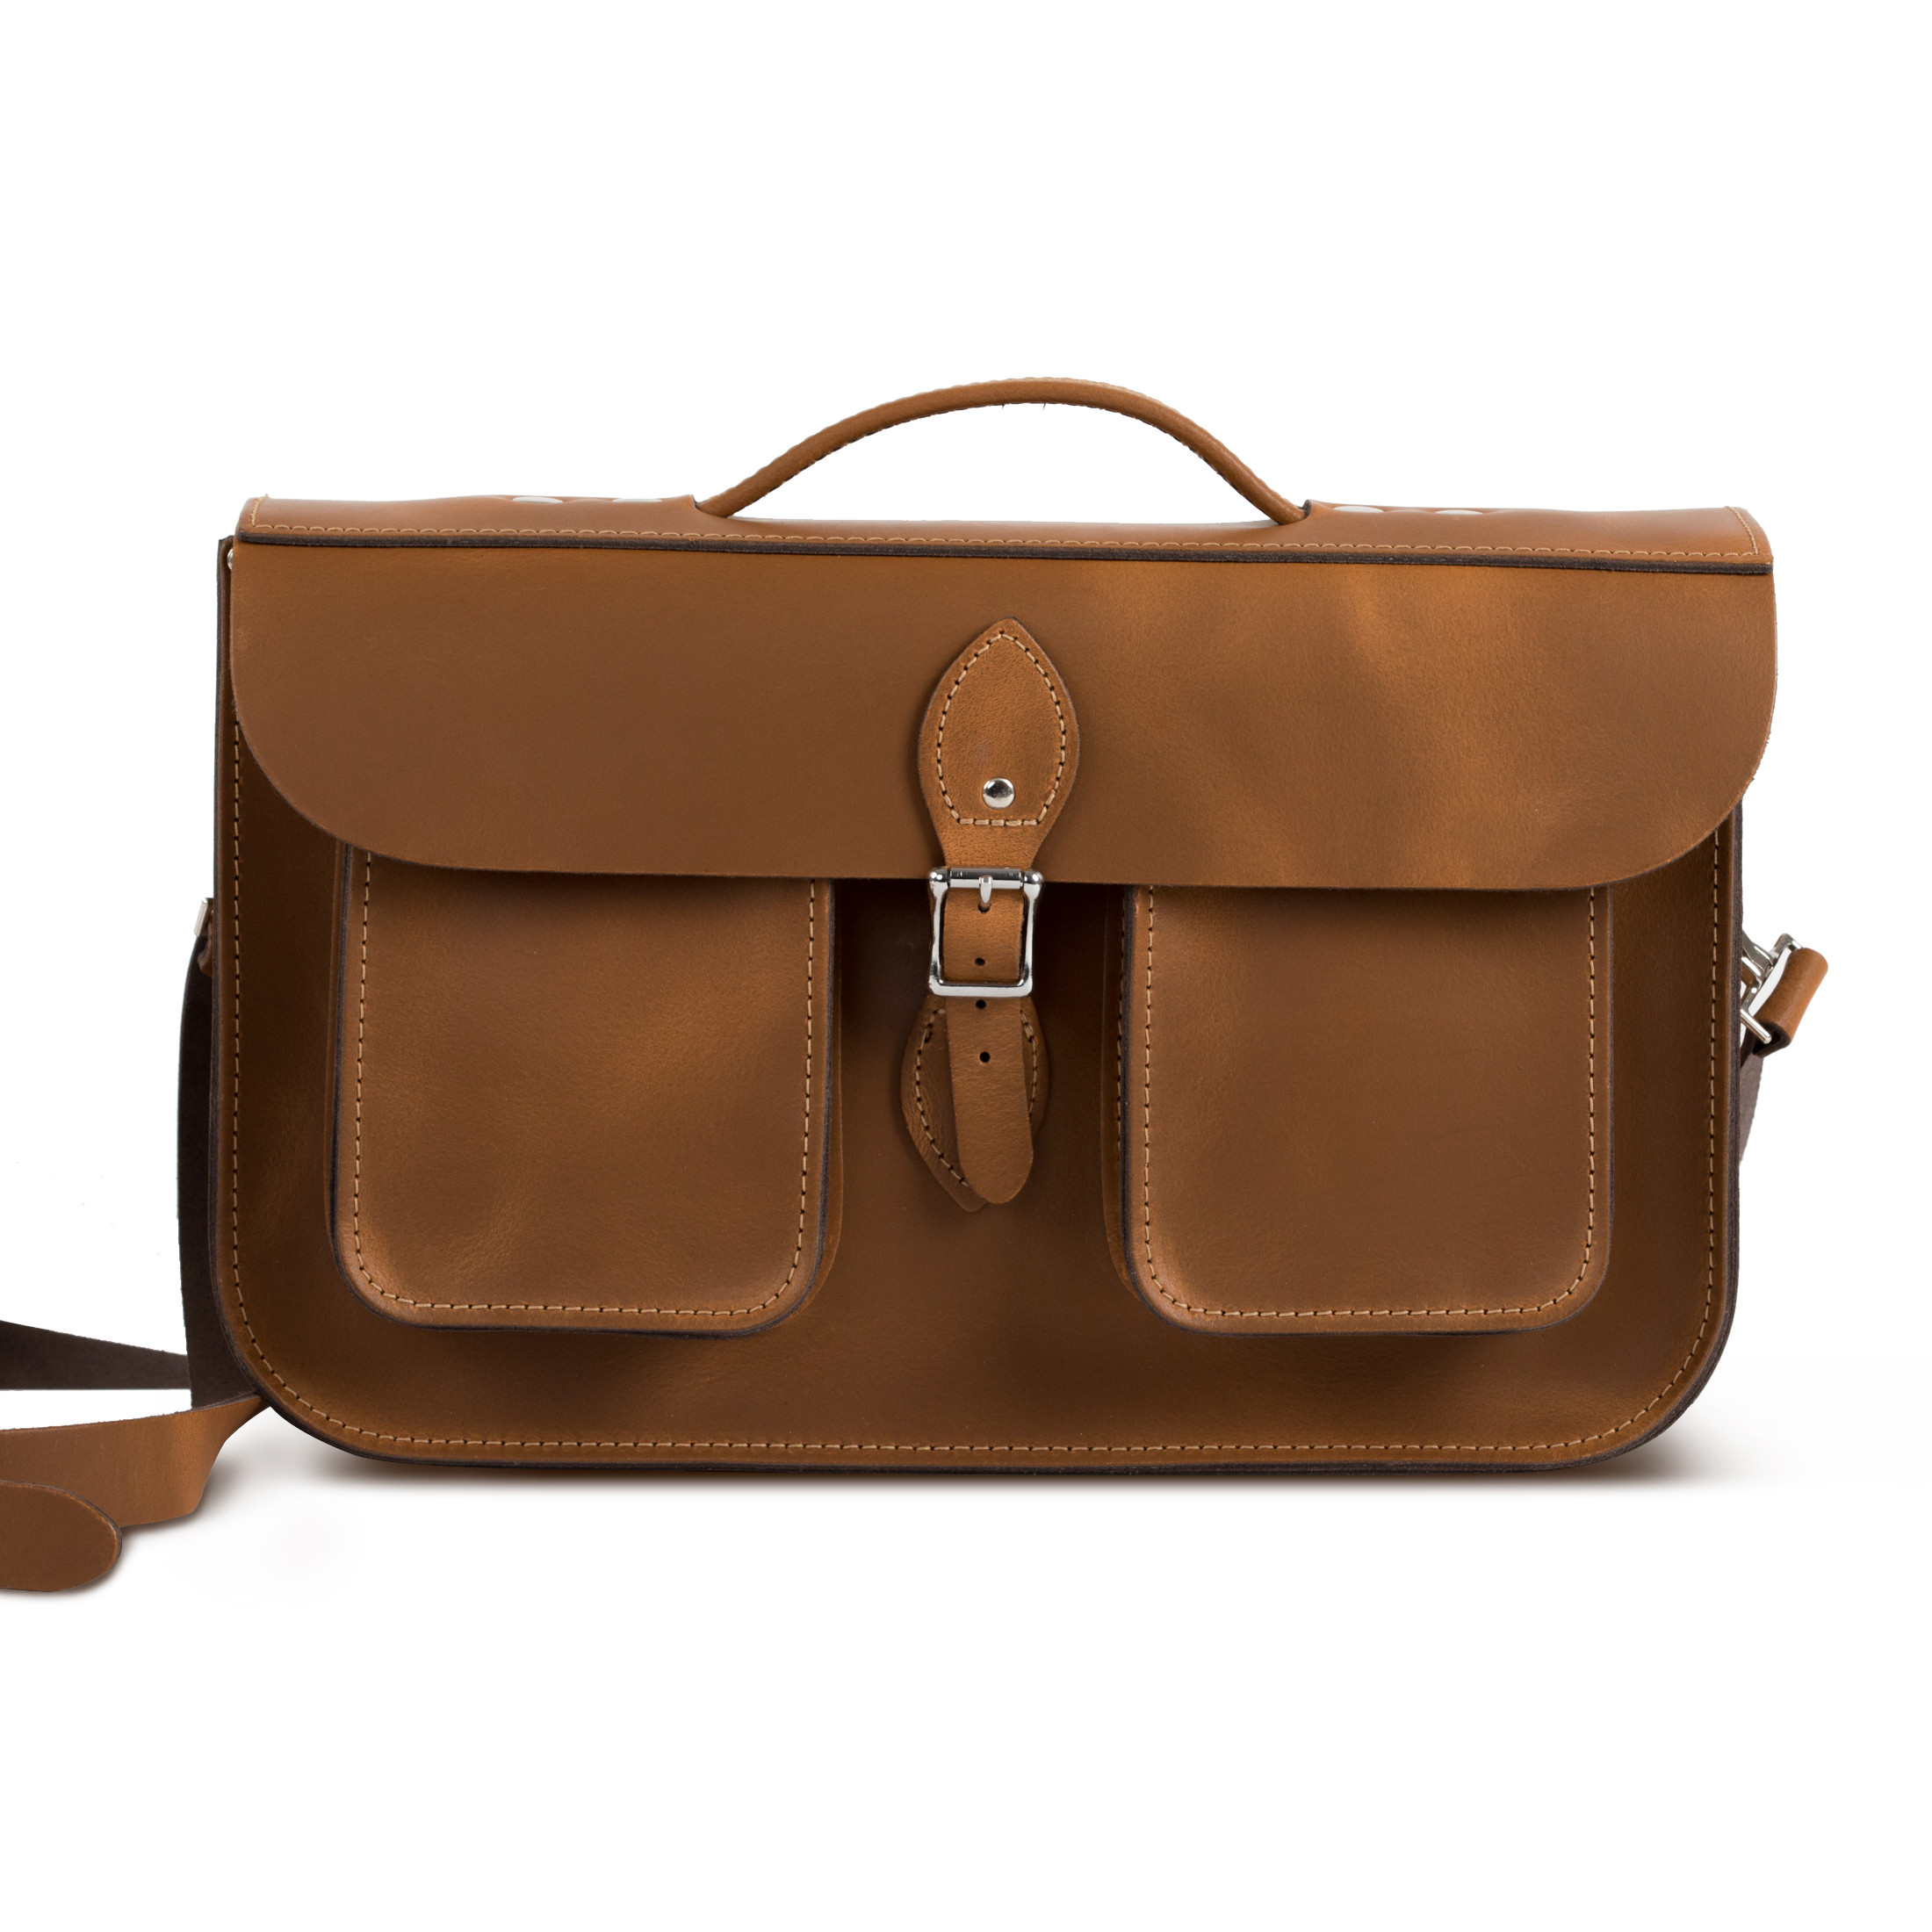 Jude Premium Leather Briefcase in Vintage Tan